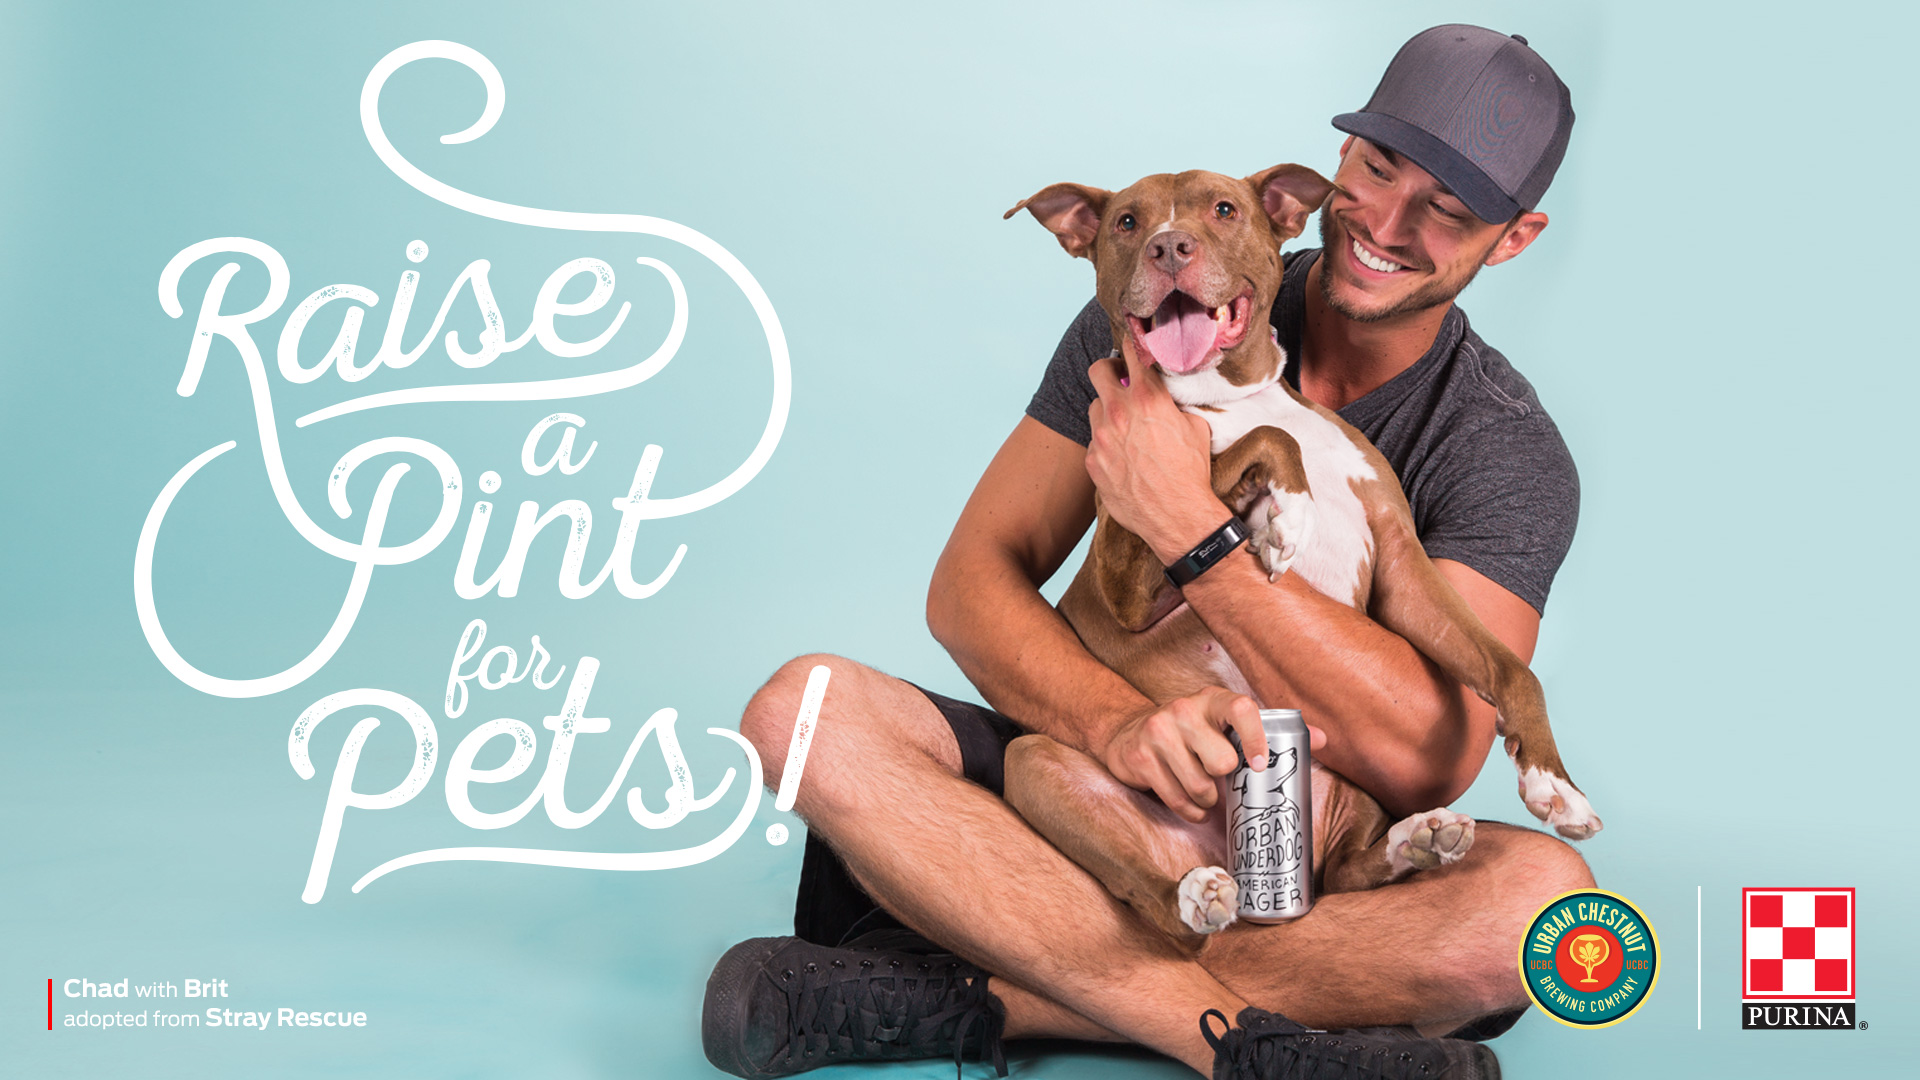 Raise a Pint for Pets - Purina branding